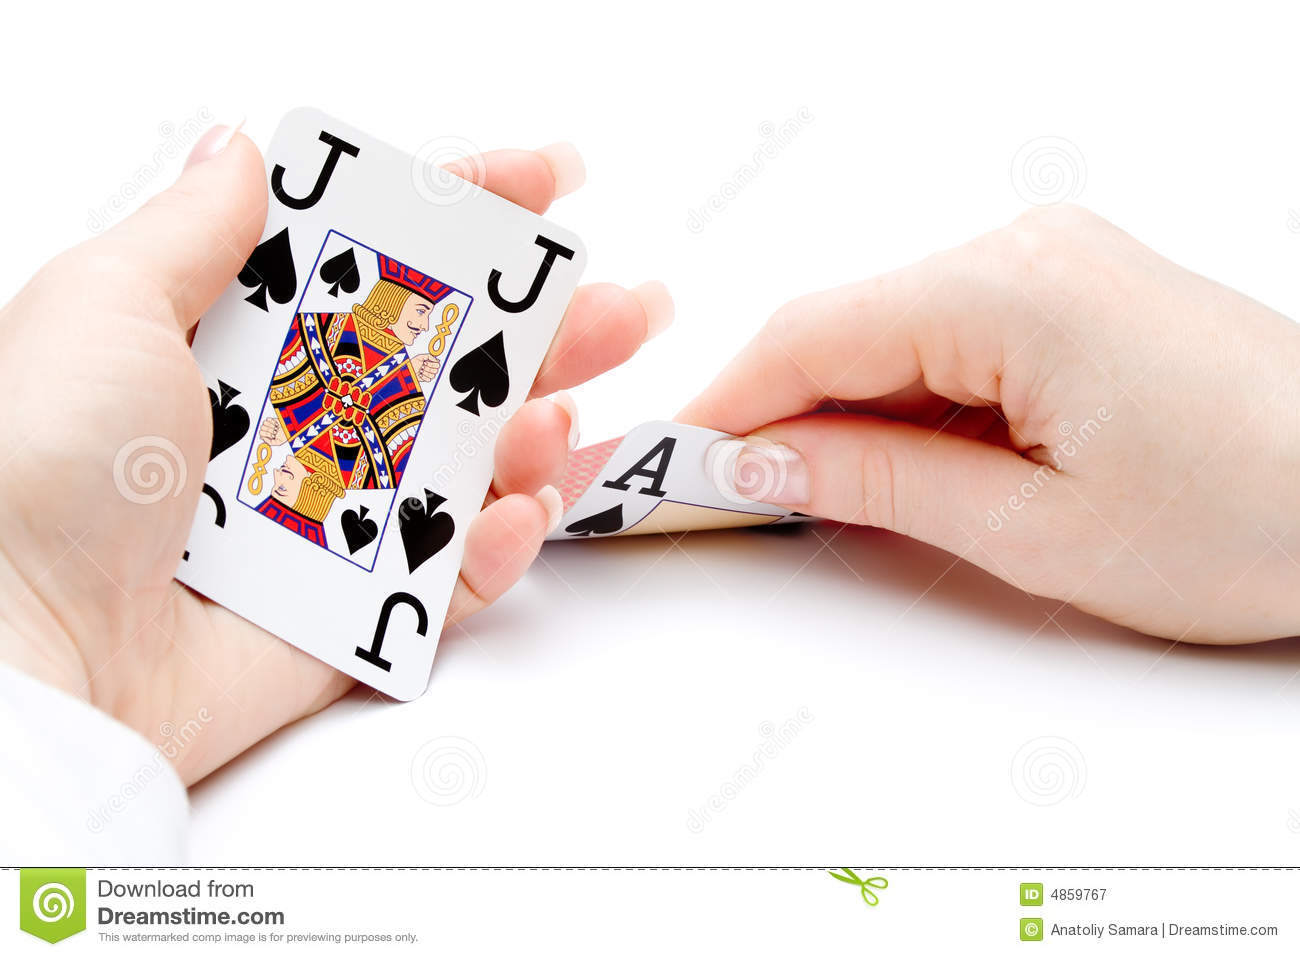 Chances of losing 6 blackjack hands in a row